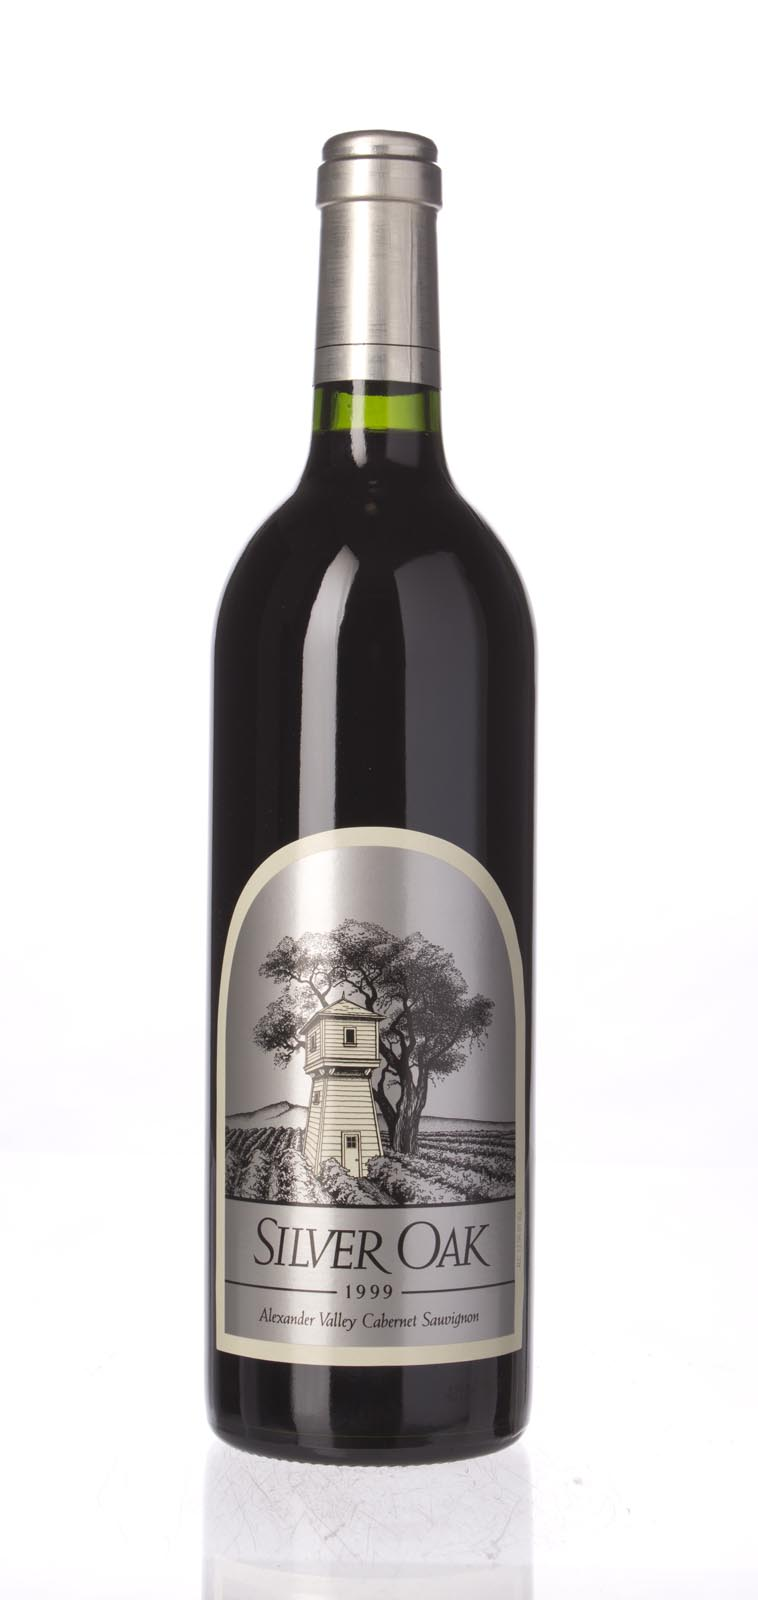 Silver Oak Cabernet Sauvignon Alexander Valley 1999, 750mL (WA89) from The BPW - Merchants of rare and fine wines.